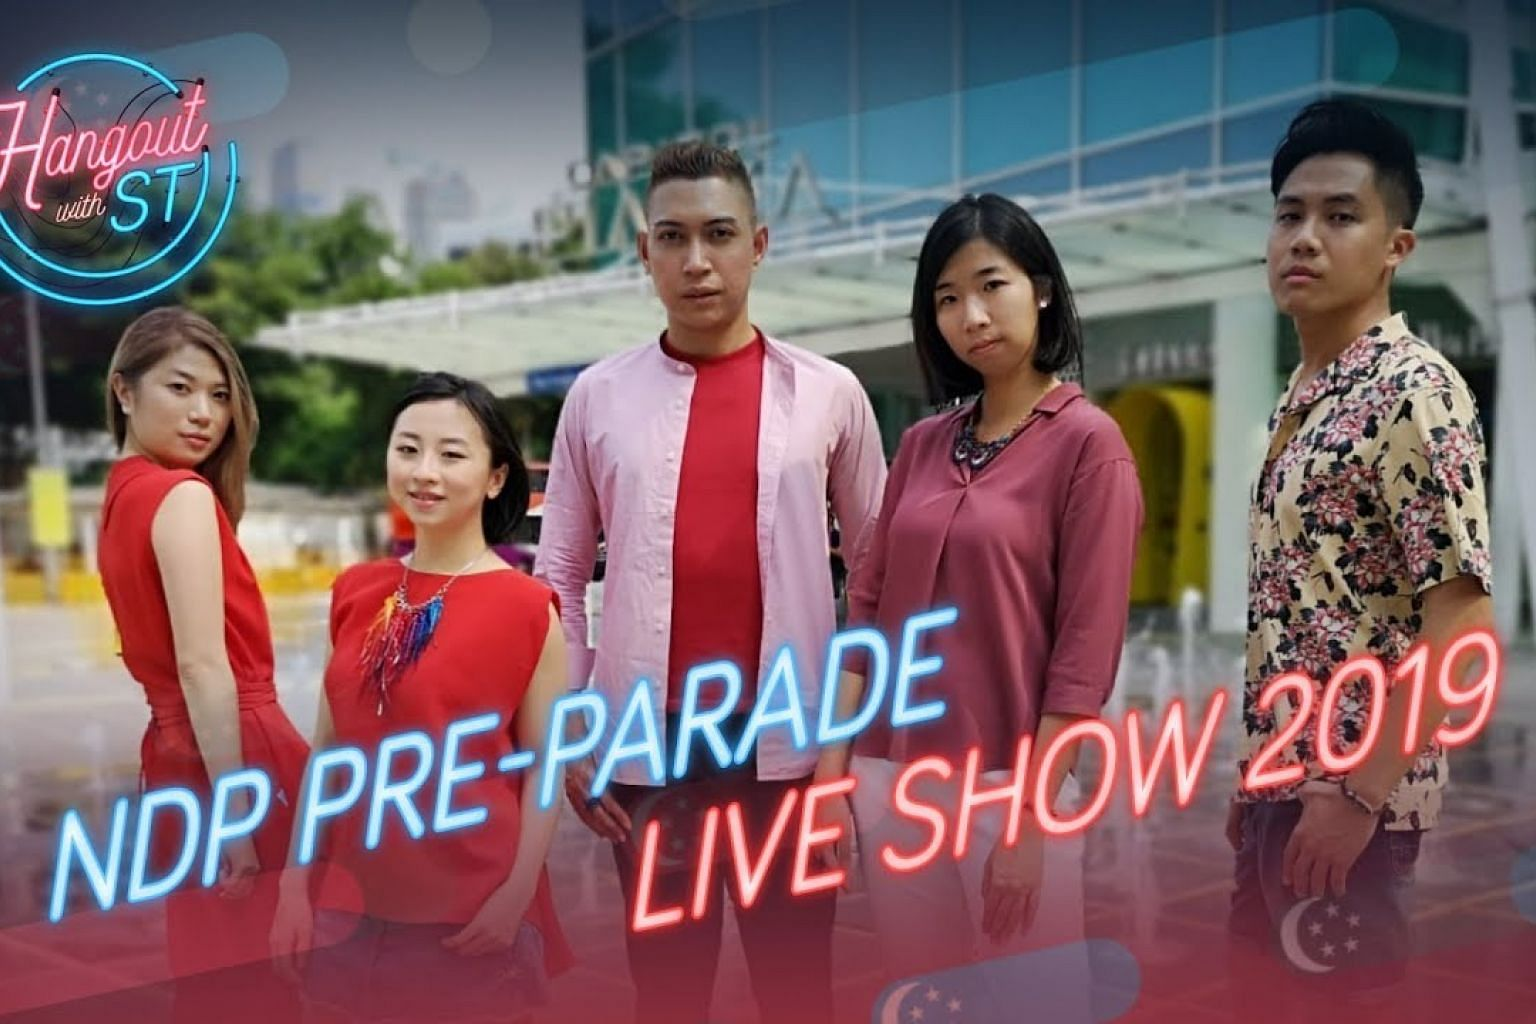 NDP 2019 PRE-PARADE LIVE SHOW | Hangout with ST